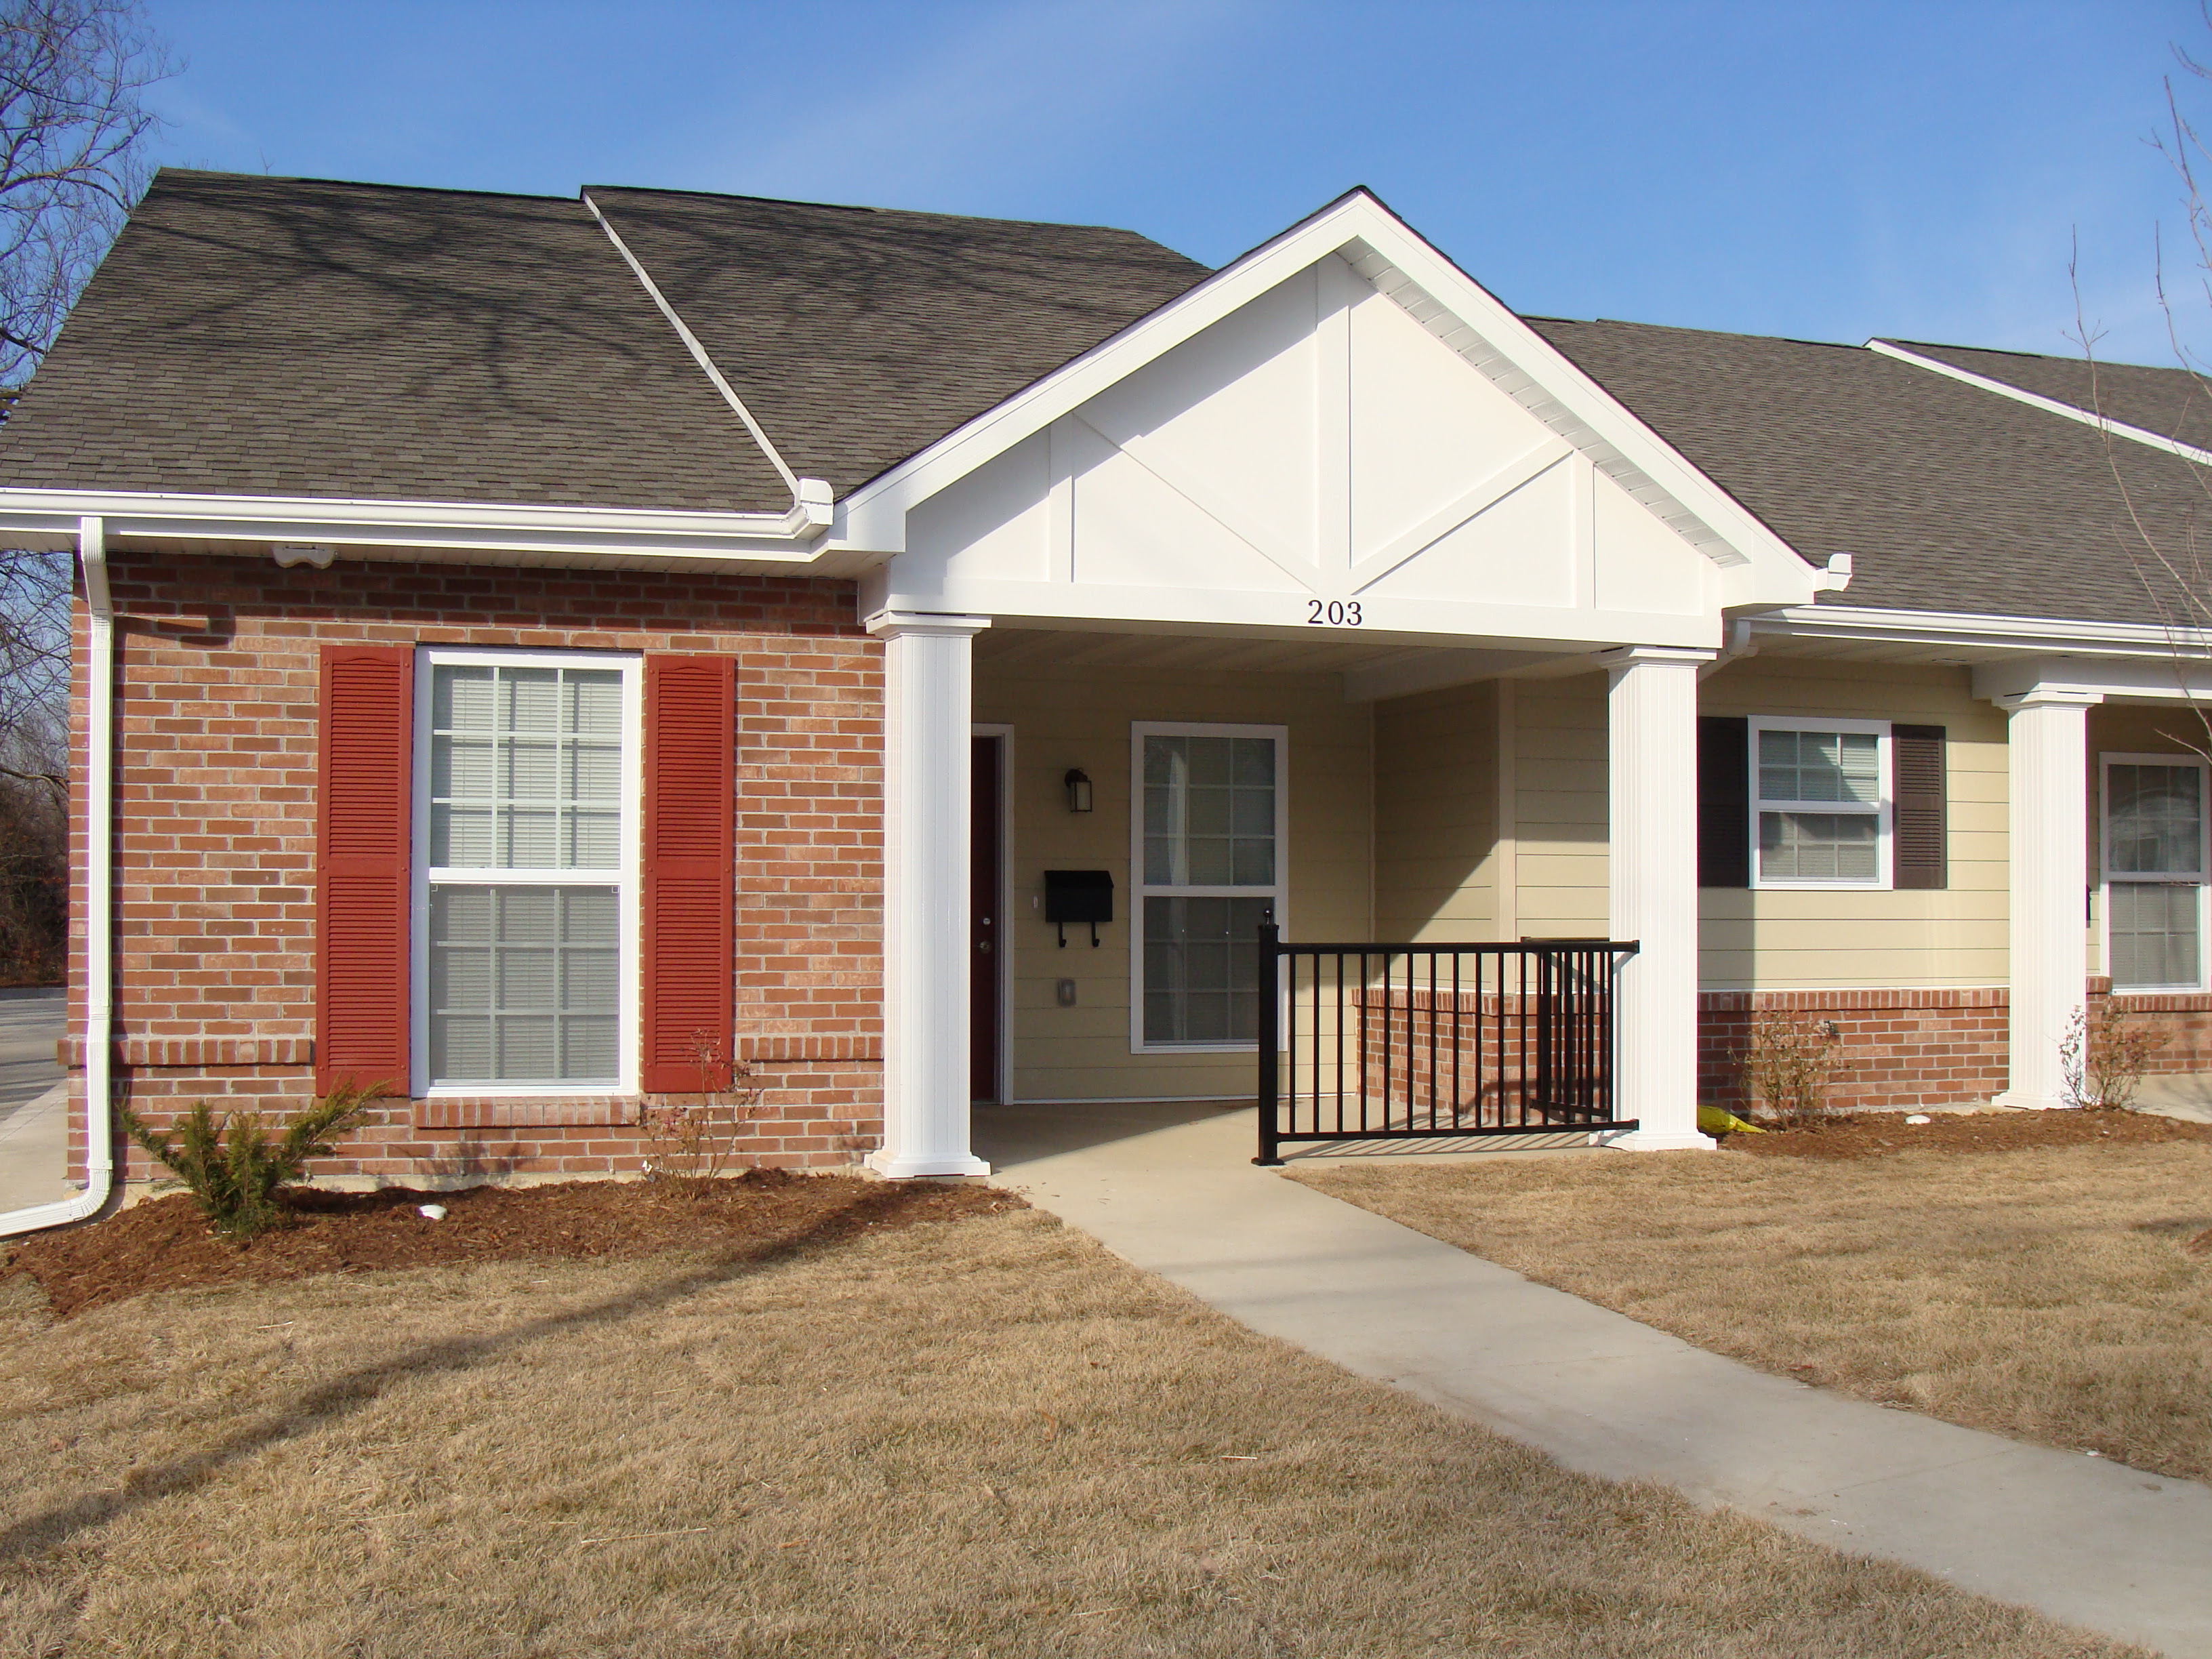 Best photo of one bedroom apartments in columbia mo - Cheap 1 bedroom apartments in columbia mo ...